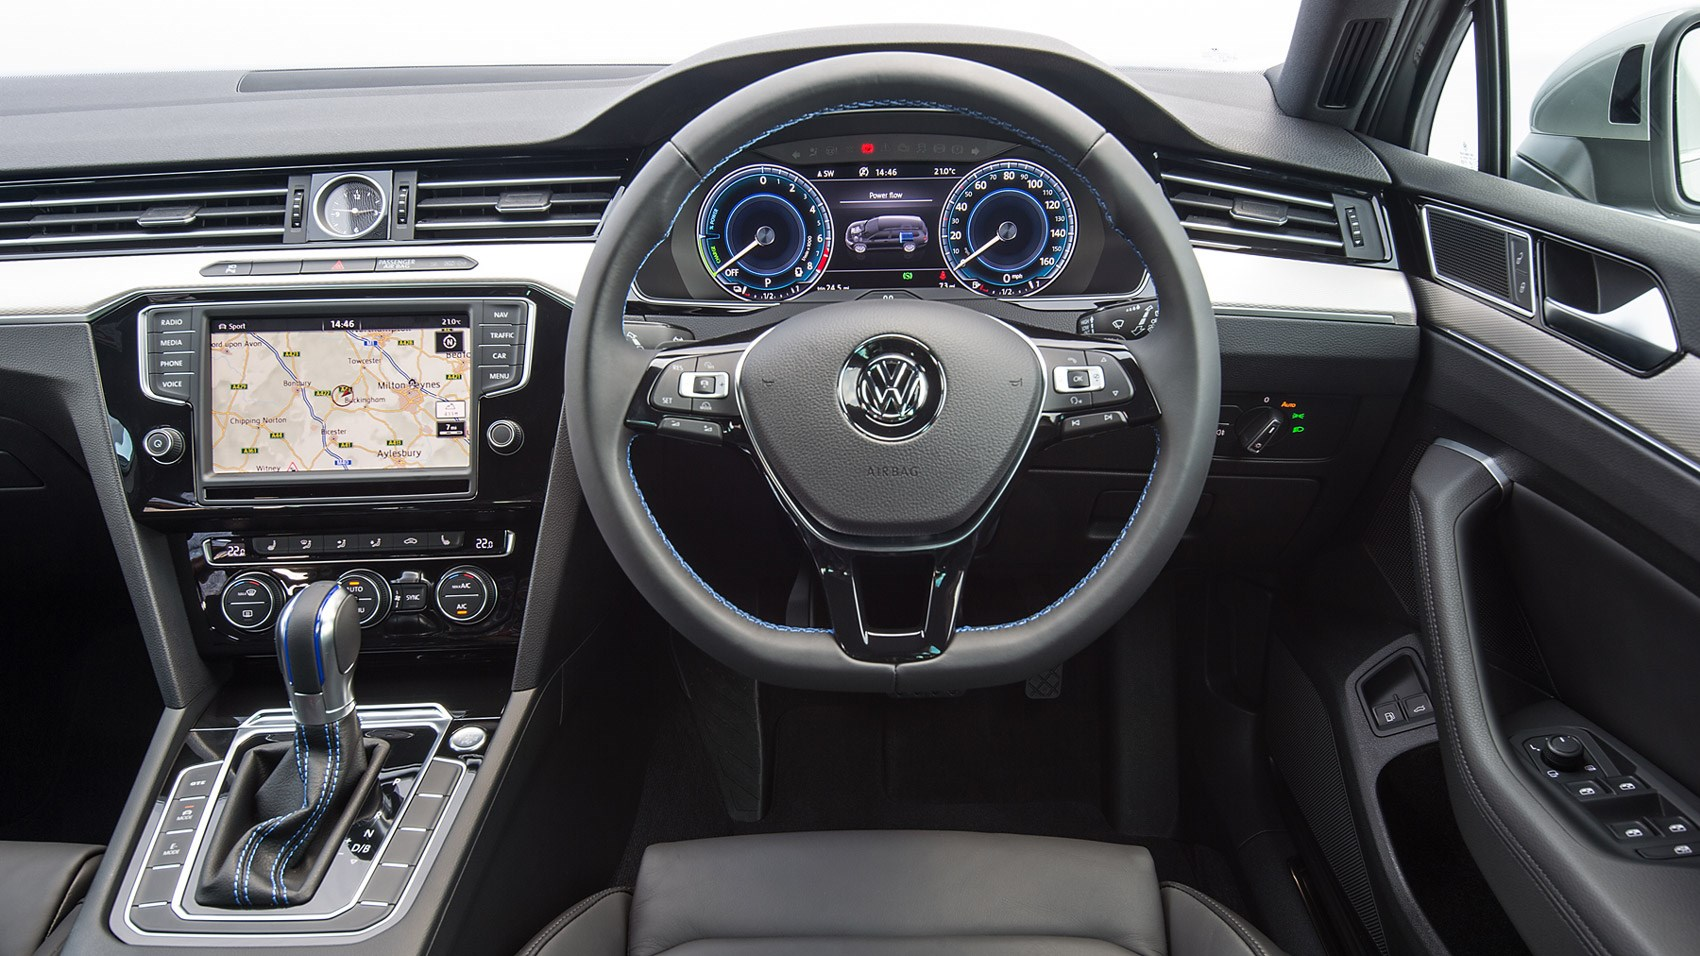 vw passat gte estate 2016 review by car magazine. Black Bedroom Furniture Sets. Home Design Ideas